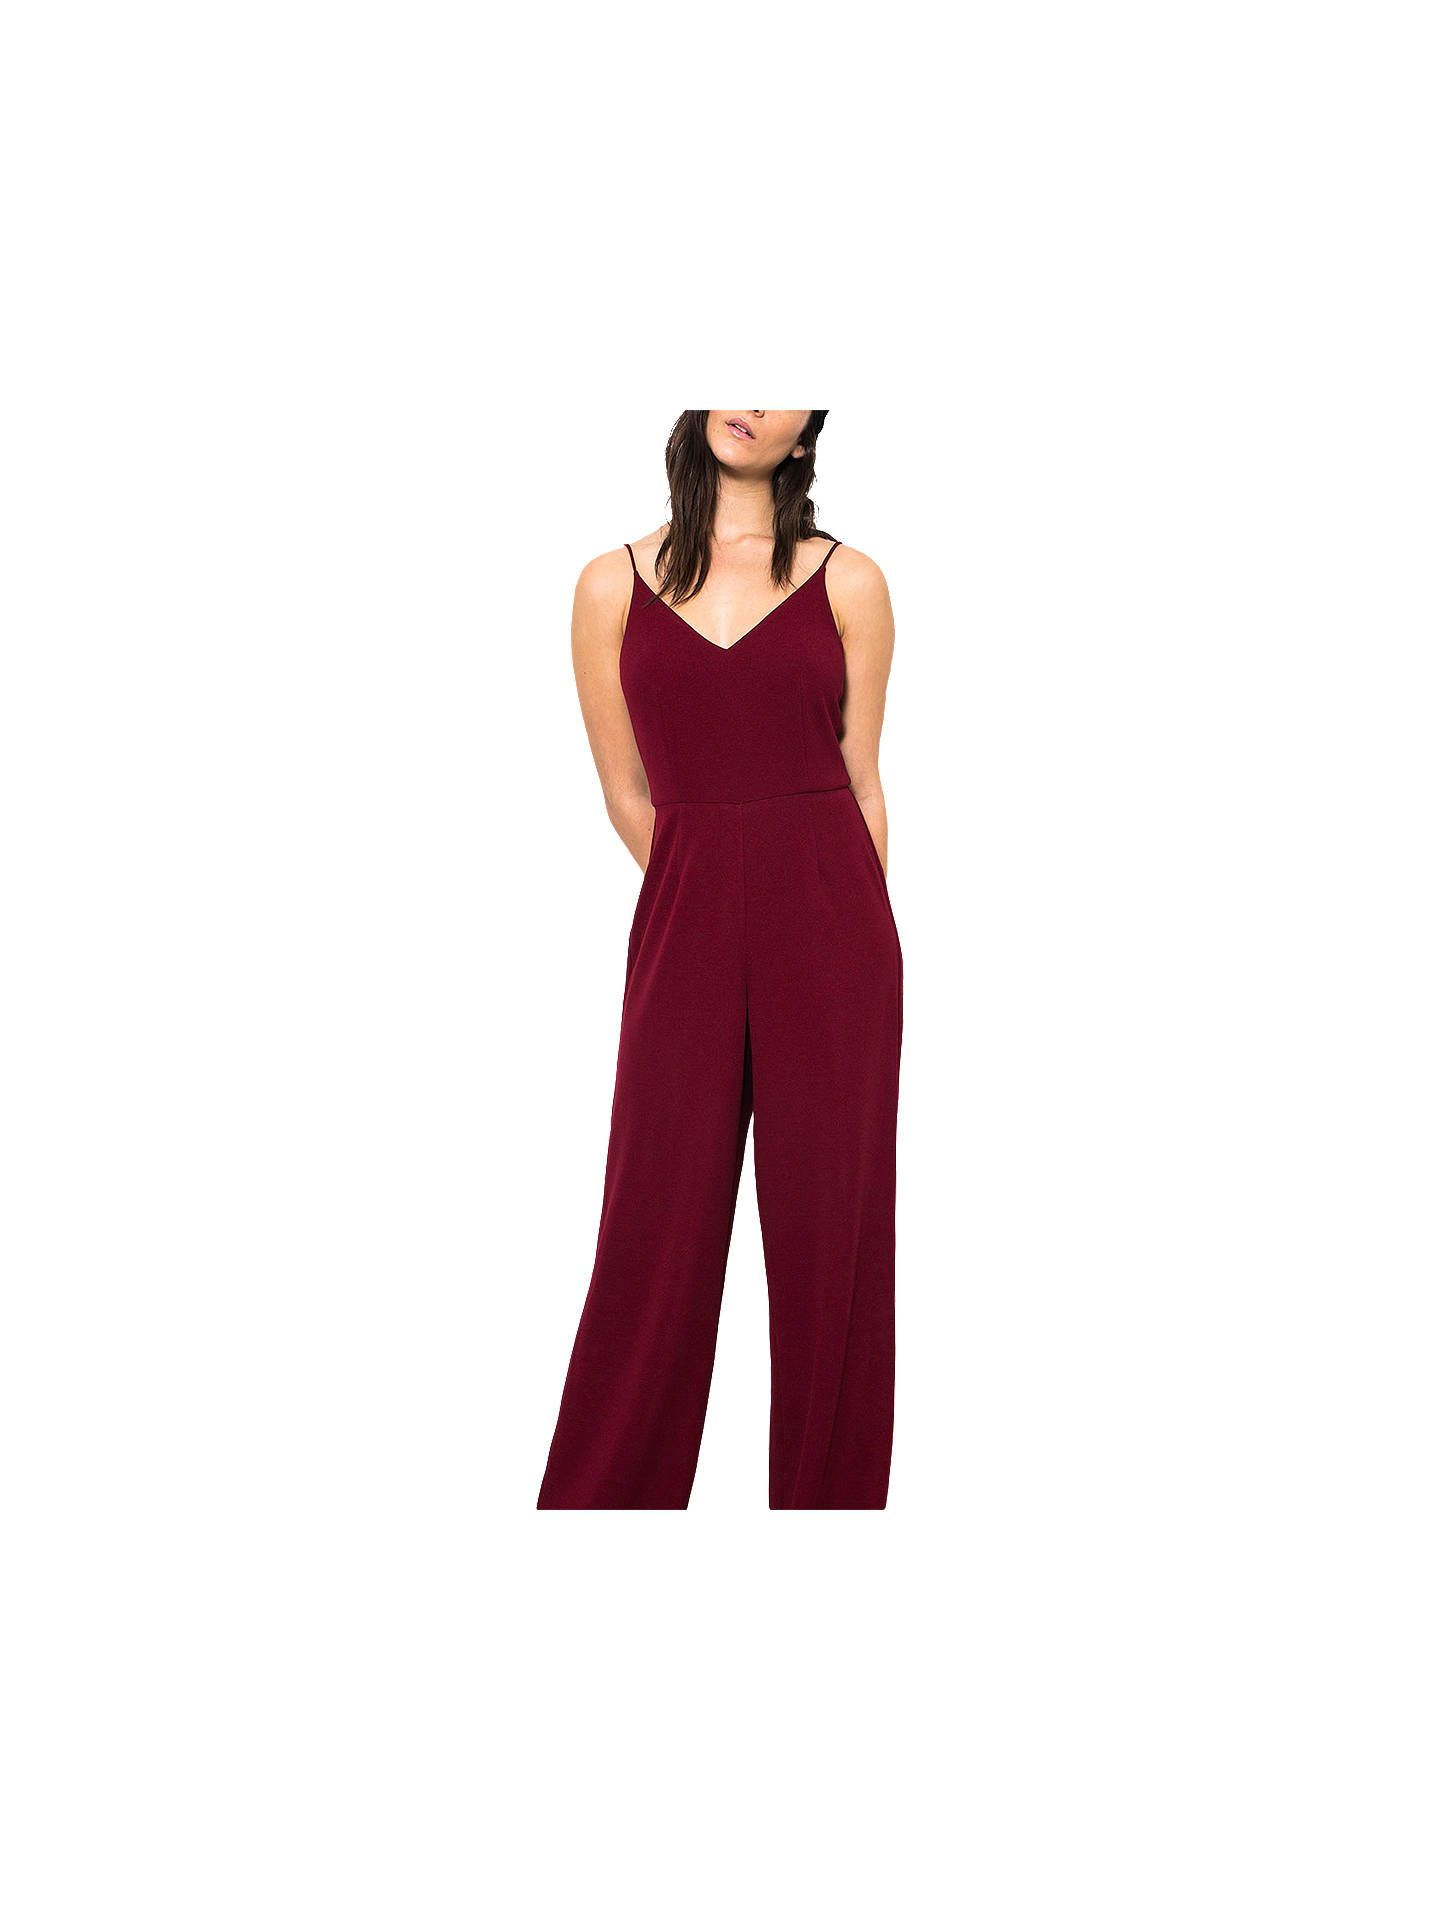 18b37814ec0a Buy Wild Pony One Piece Wide Leg Jumpsuit